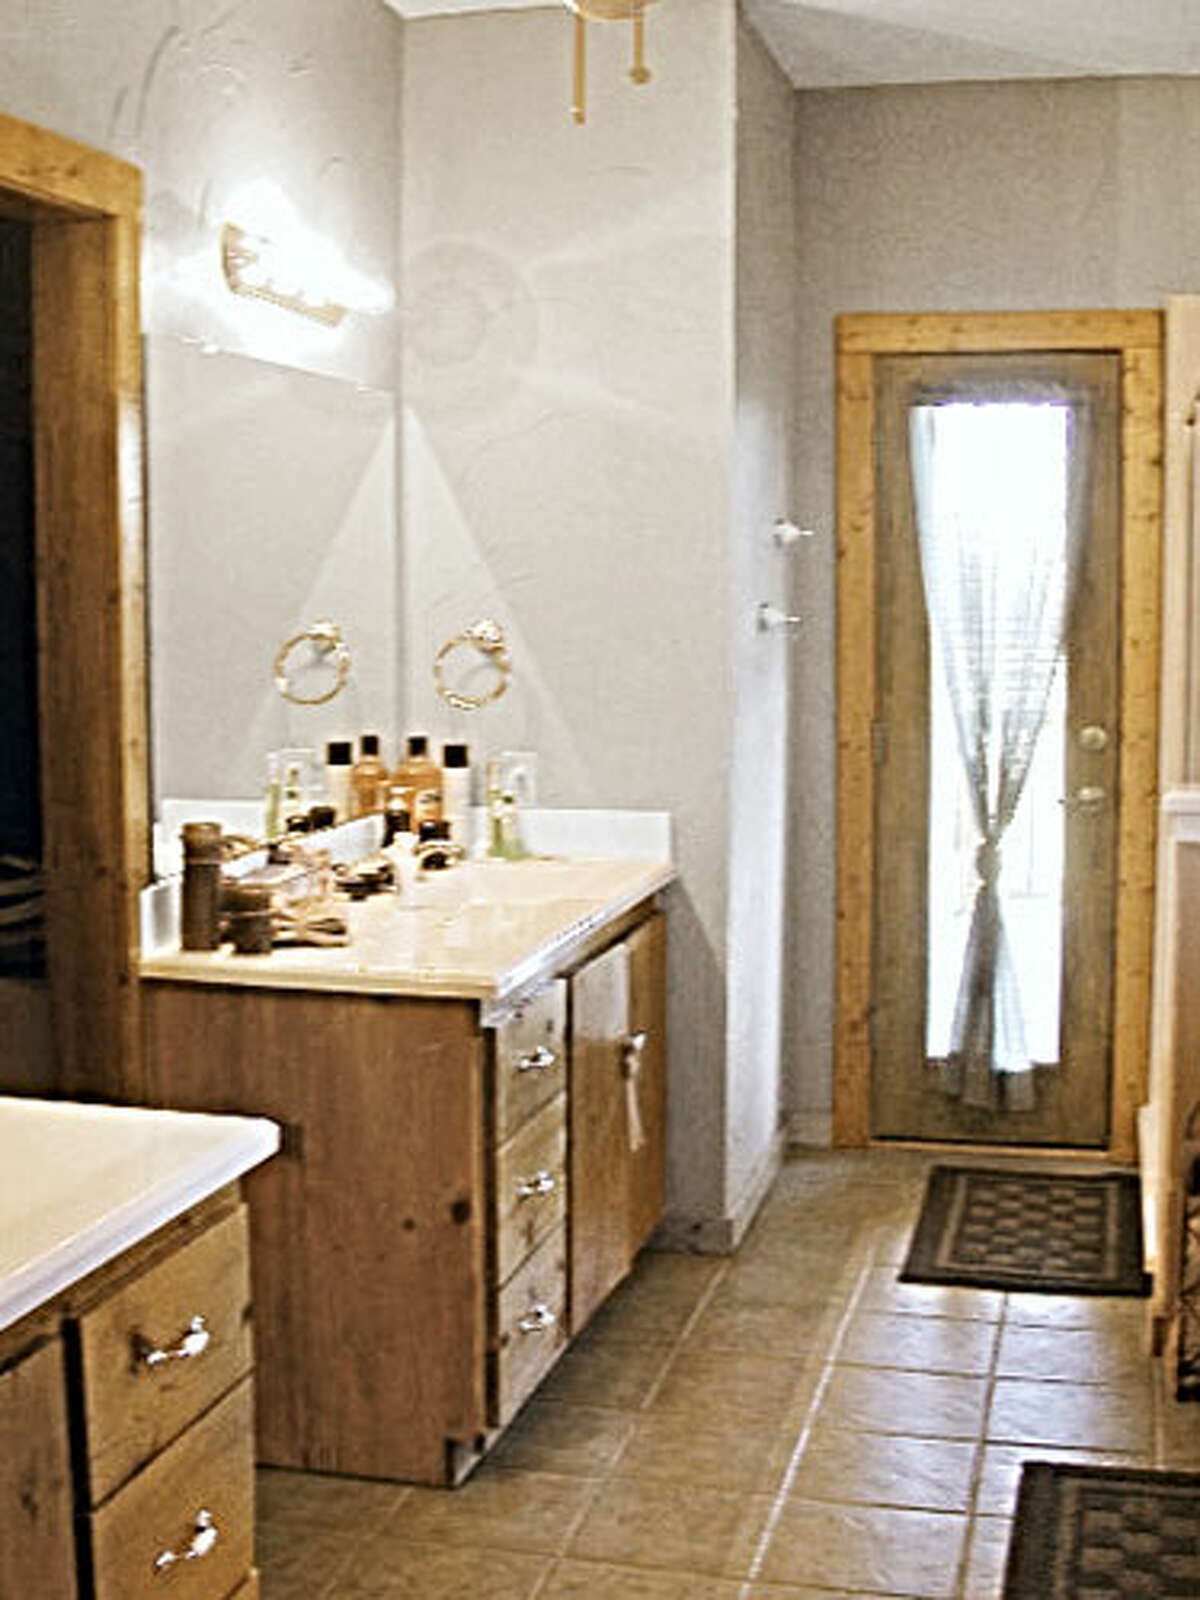 Before: Builder Basic This tract home's master bath looked the same as it did when it was built in 1998. Read: Inside an 1830s farmhouse in the Catskills